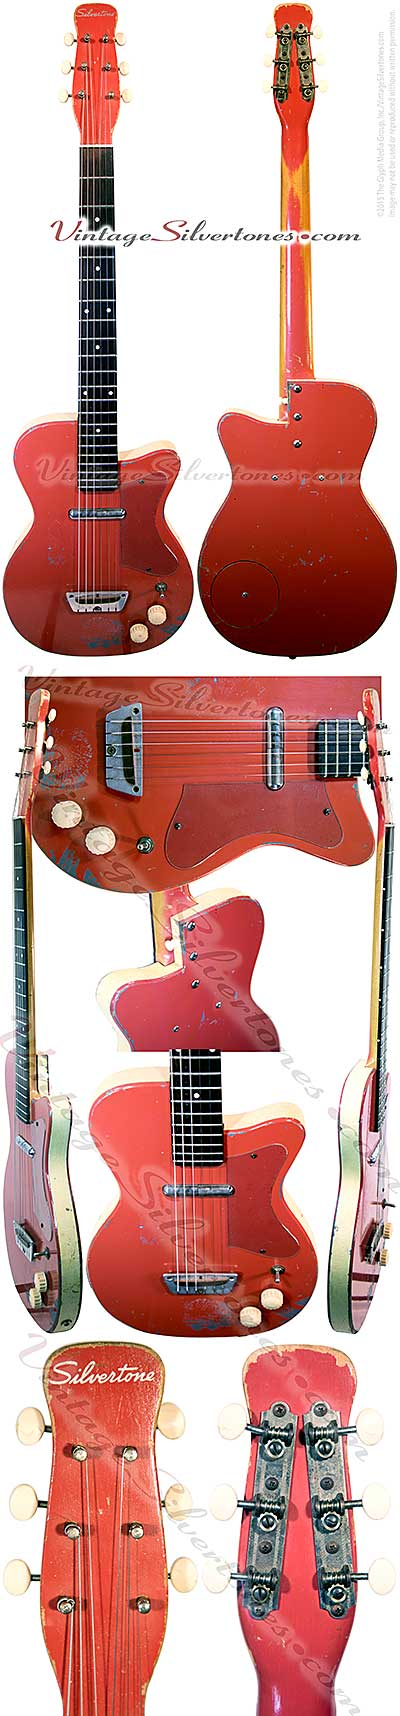 Silvertone 1358 made by Danelectro U1, one pickup, electric guitar, semi-hollow body, coral finish white vinyl binding, masonite body, lipstick pickup, made in 1955